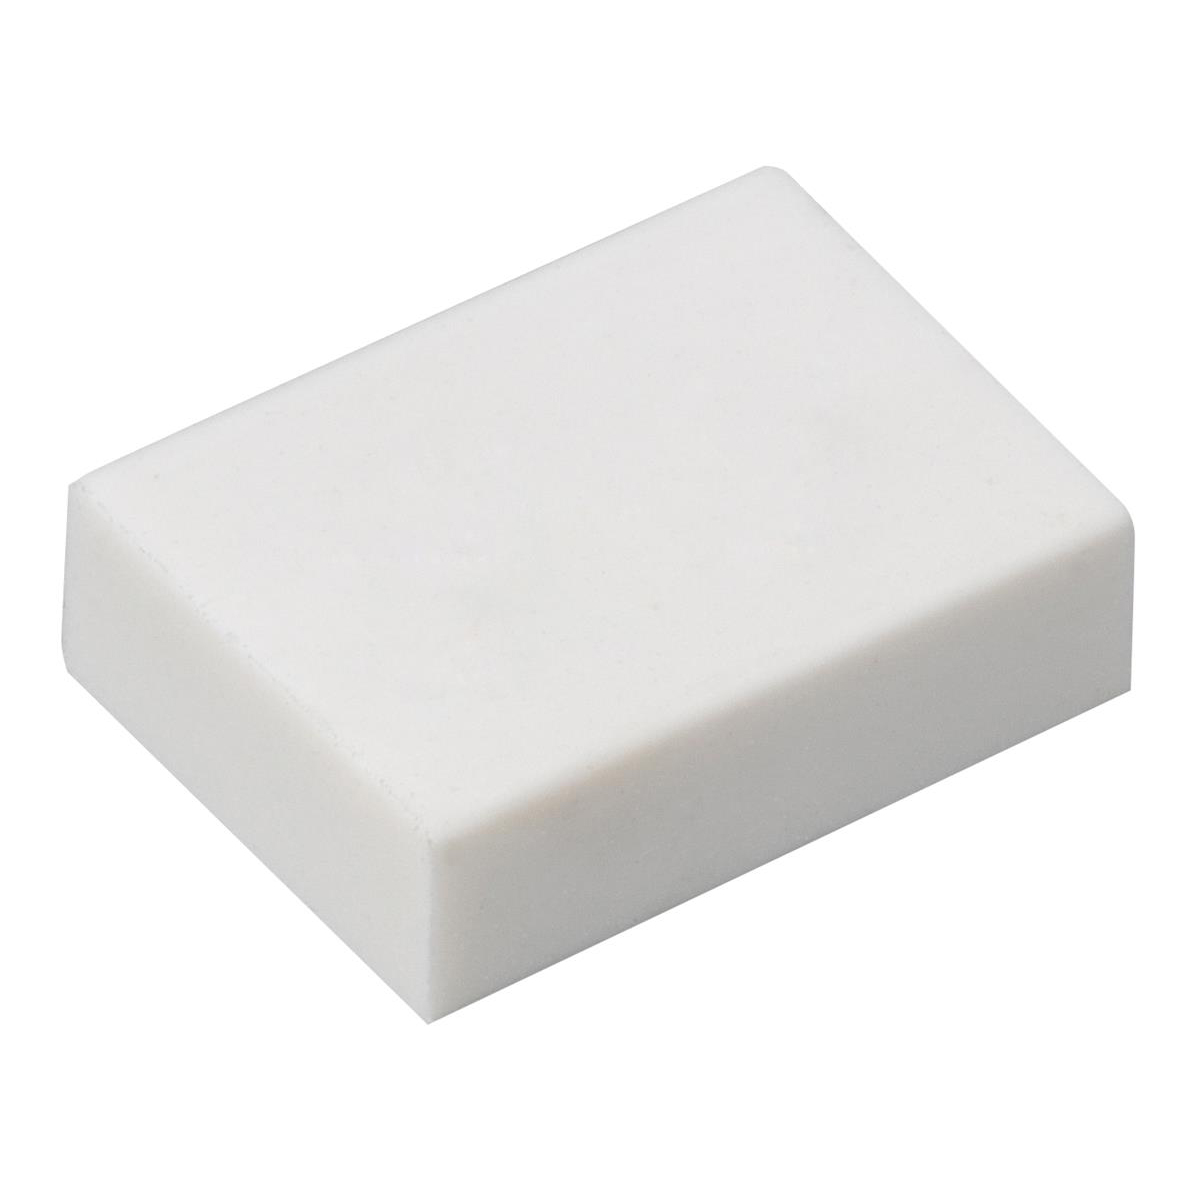 5 Star Office White Eraser 33x23x10mm Pack 45